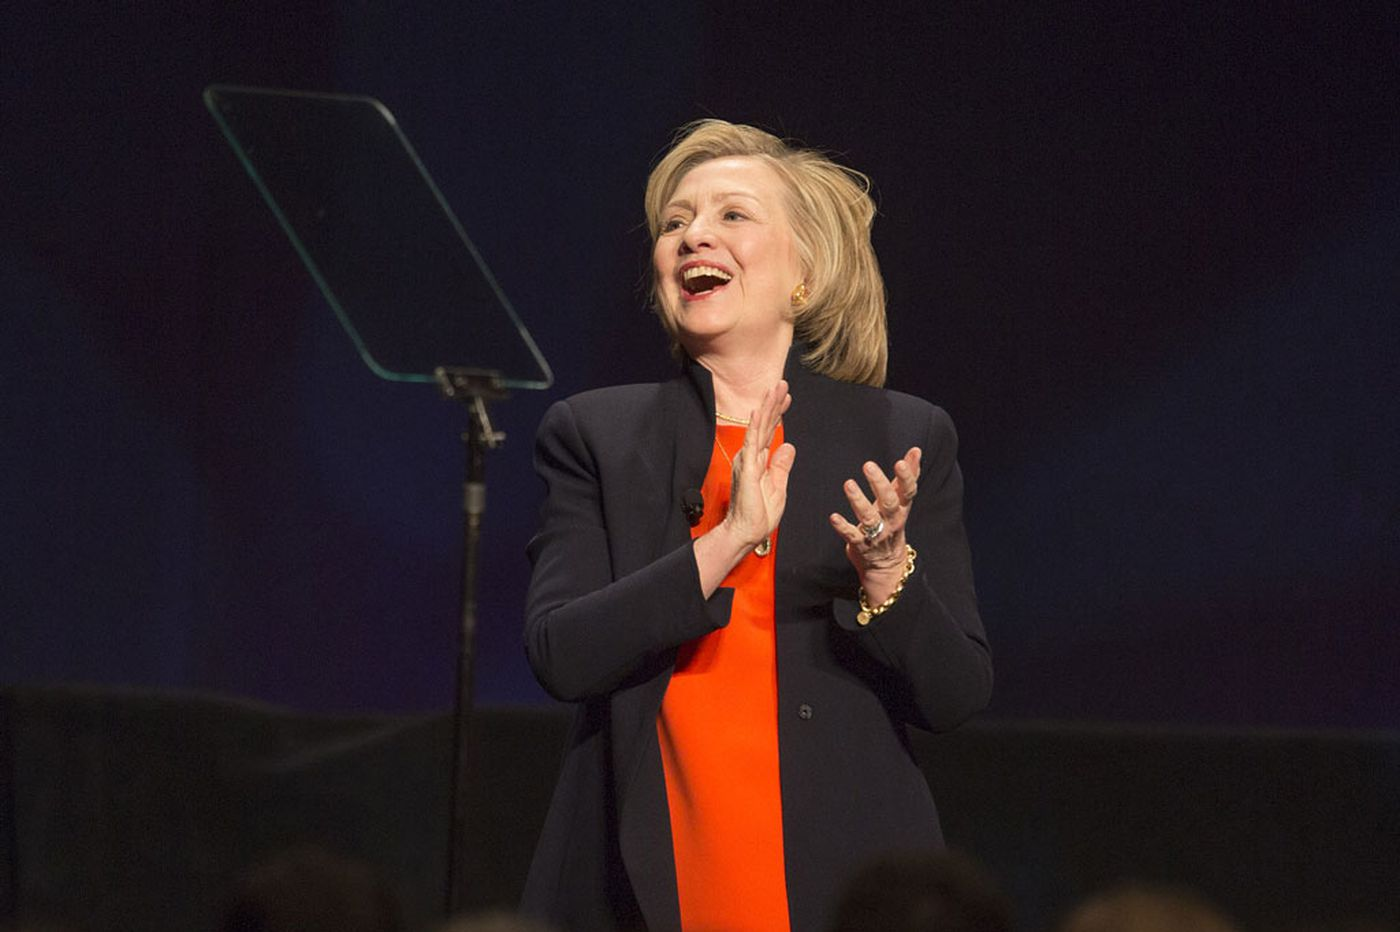 In A.C., Clinton hints at campaign themes